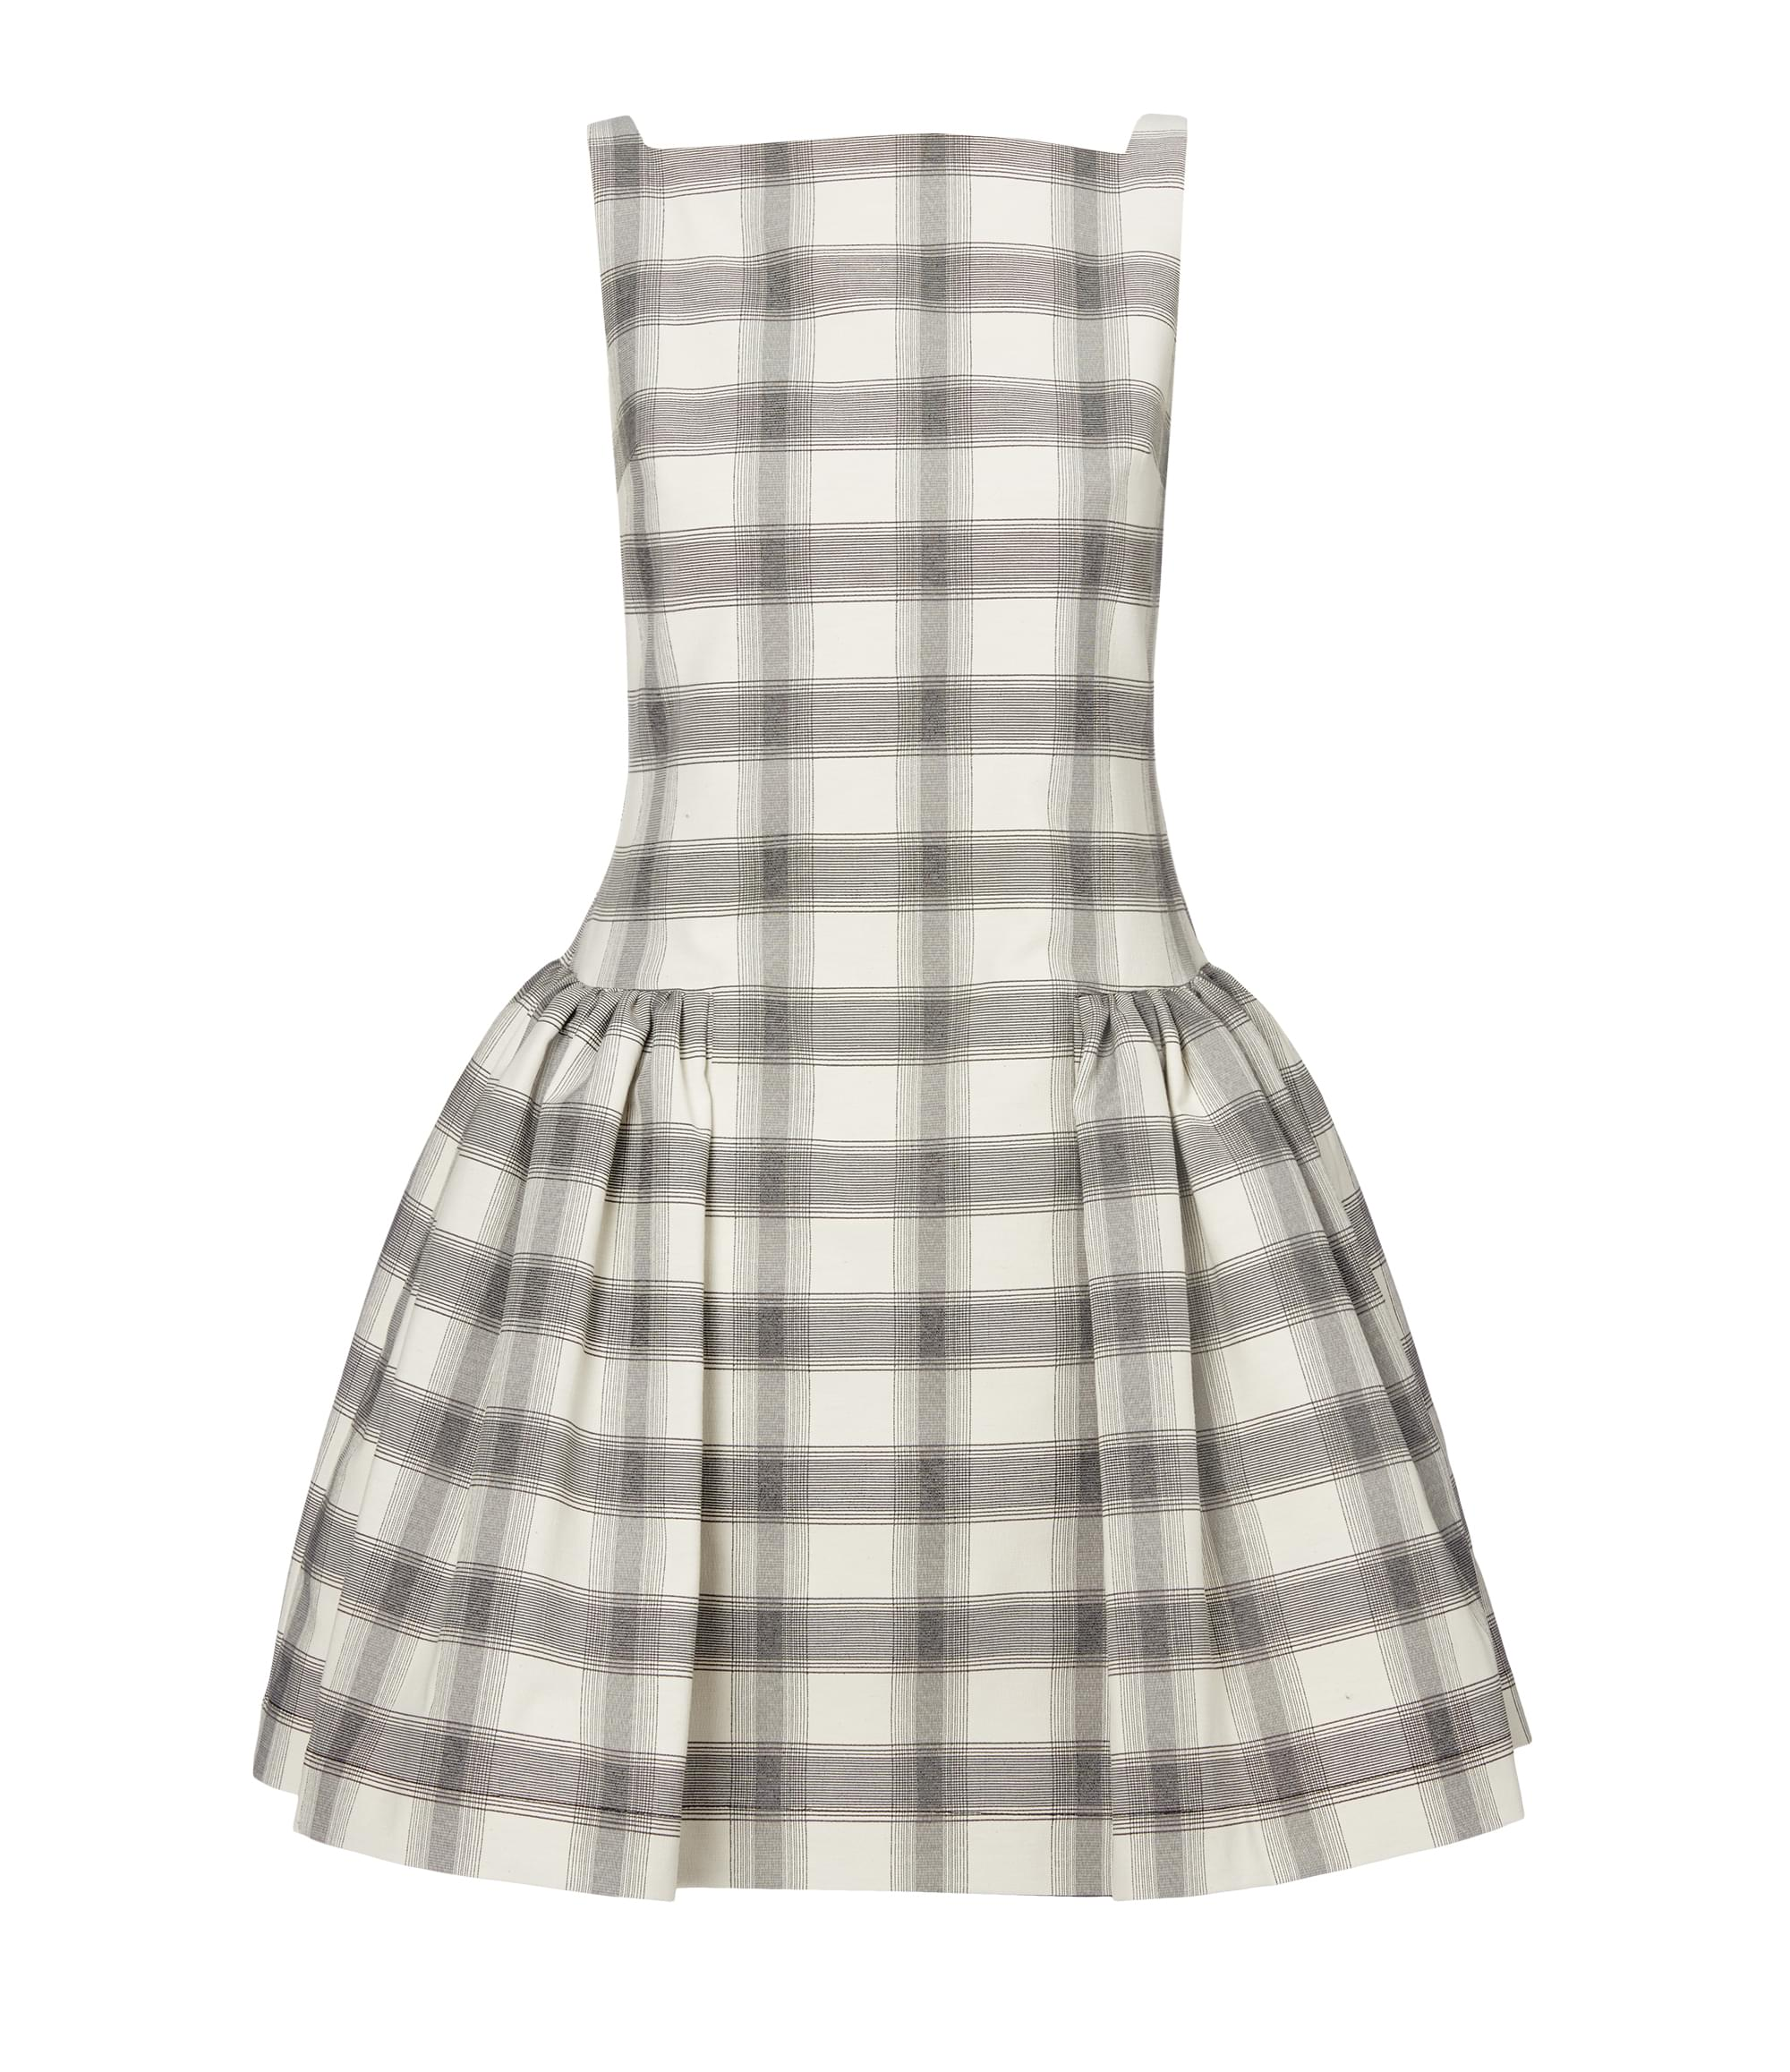 Vivienne Westwood Checked Degass Dress